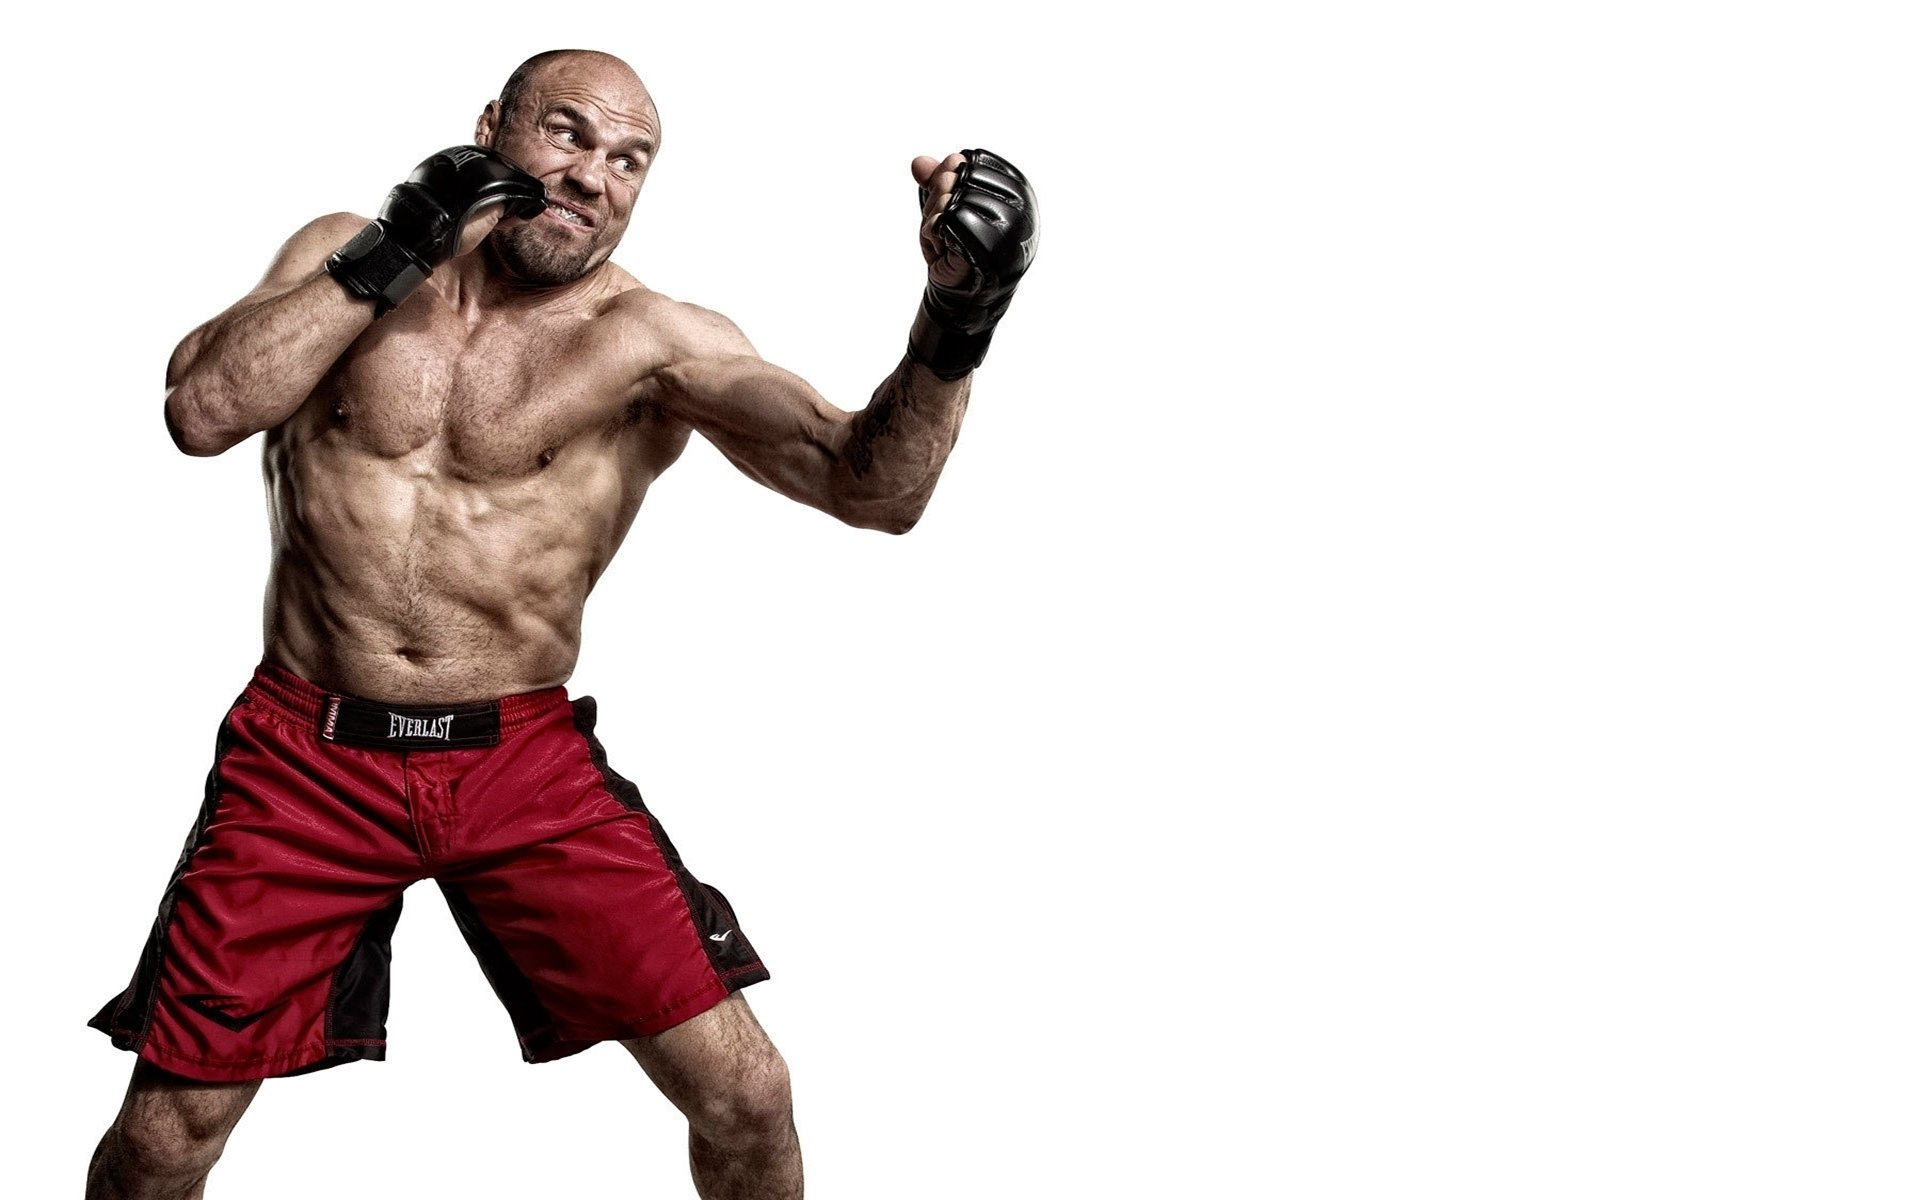 77 mma hd wallpapers background images wallpaper abyss hd wallpaper background image id292171 altavistaventures Choice Image